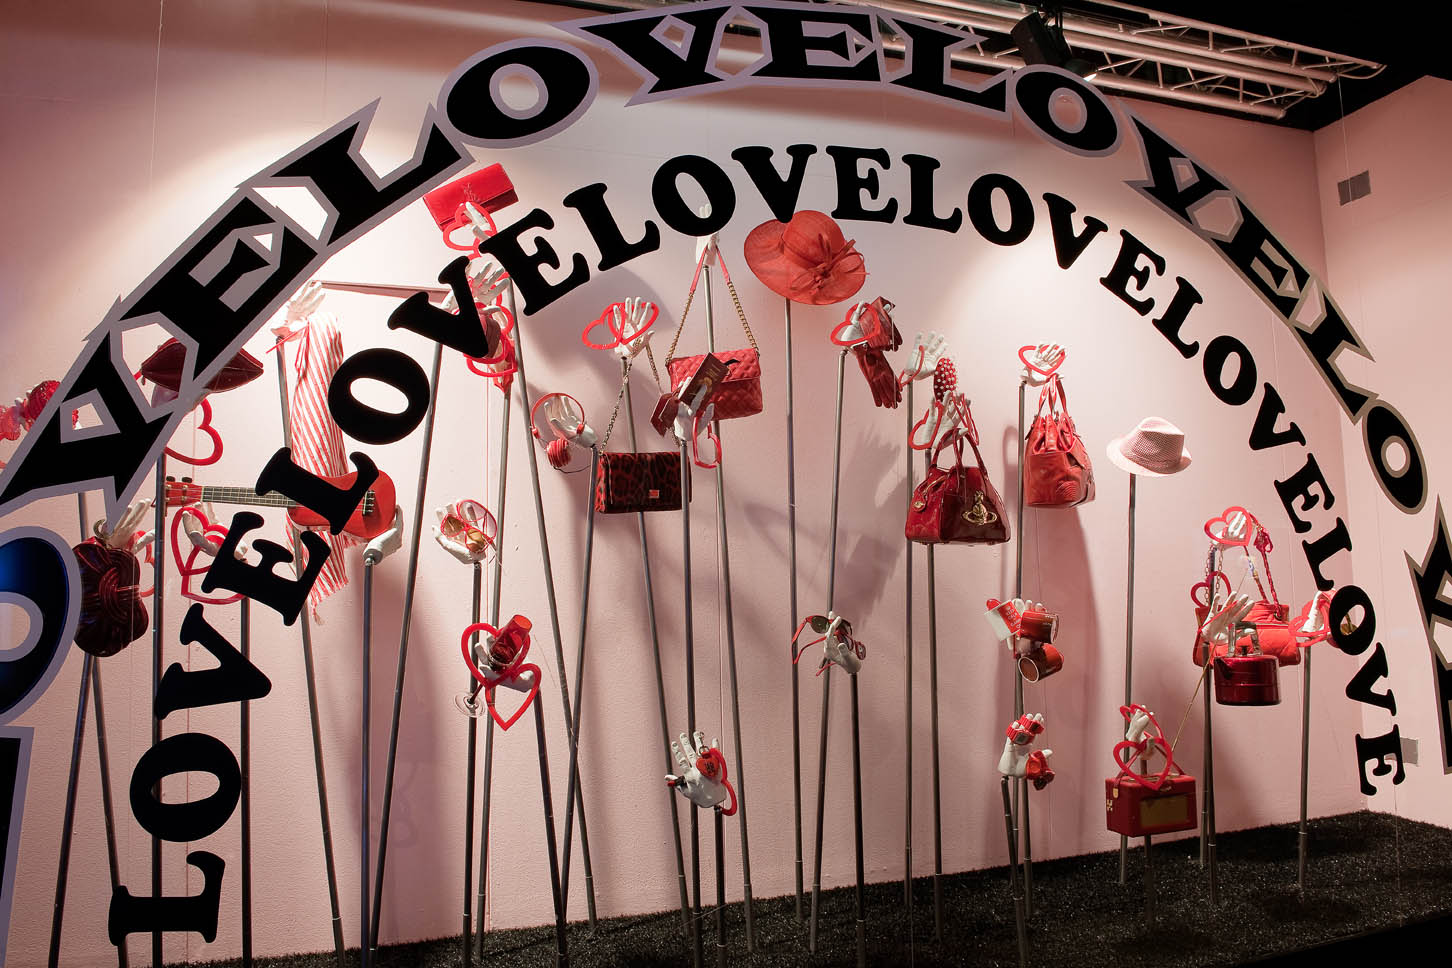 The window display is designed with an arch of love stickers, and red purses, to be in theme with Valentine's day.